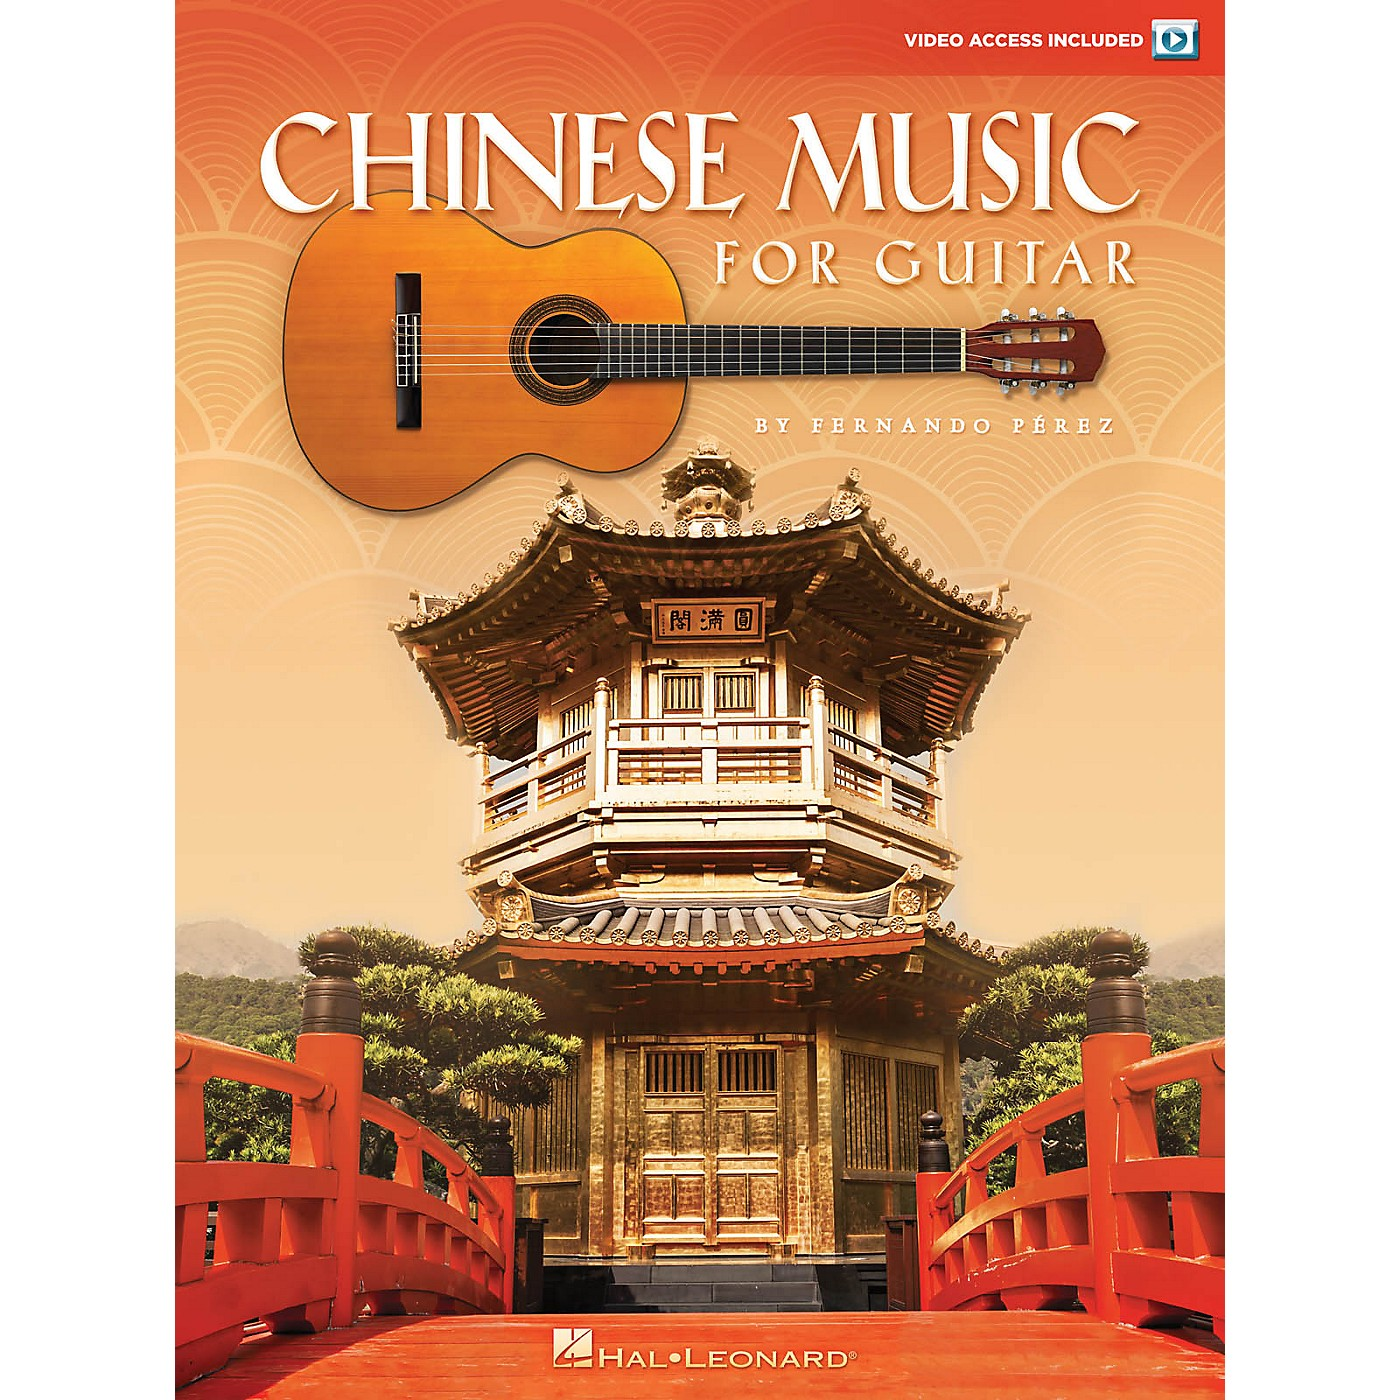 Hal Leonard Chinese Music for Guitar Collection Series Softcover Video Online Written by Fernando Perez thumbnail